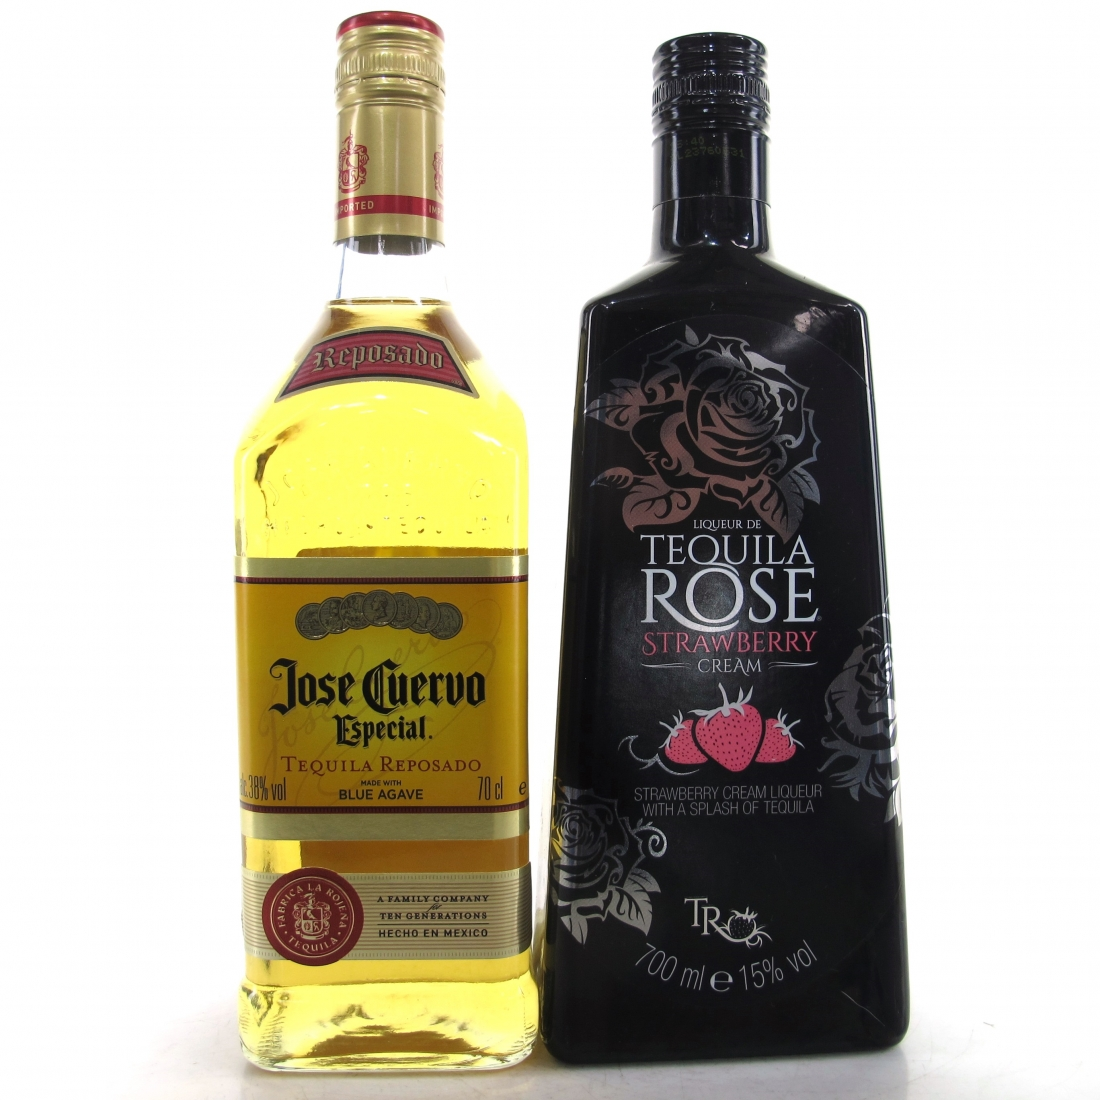 Jose Cuervo & Tequila Rose Strawberry Cream